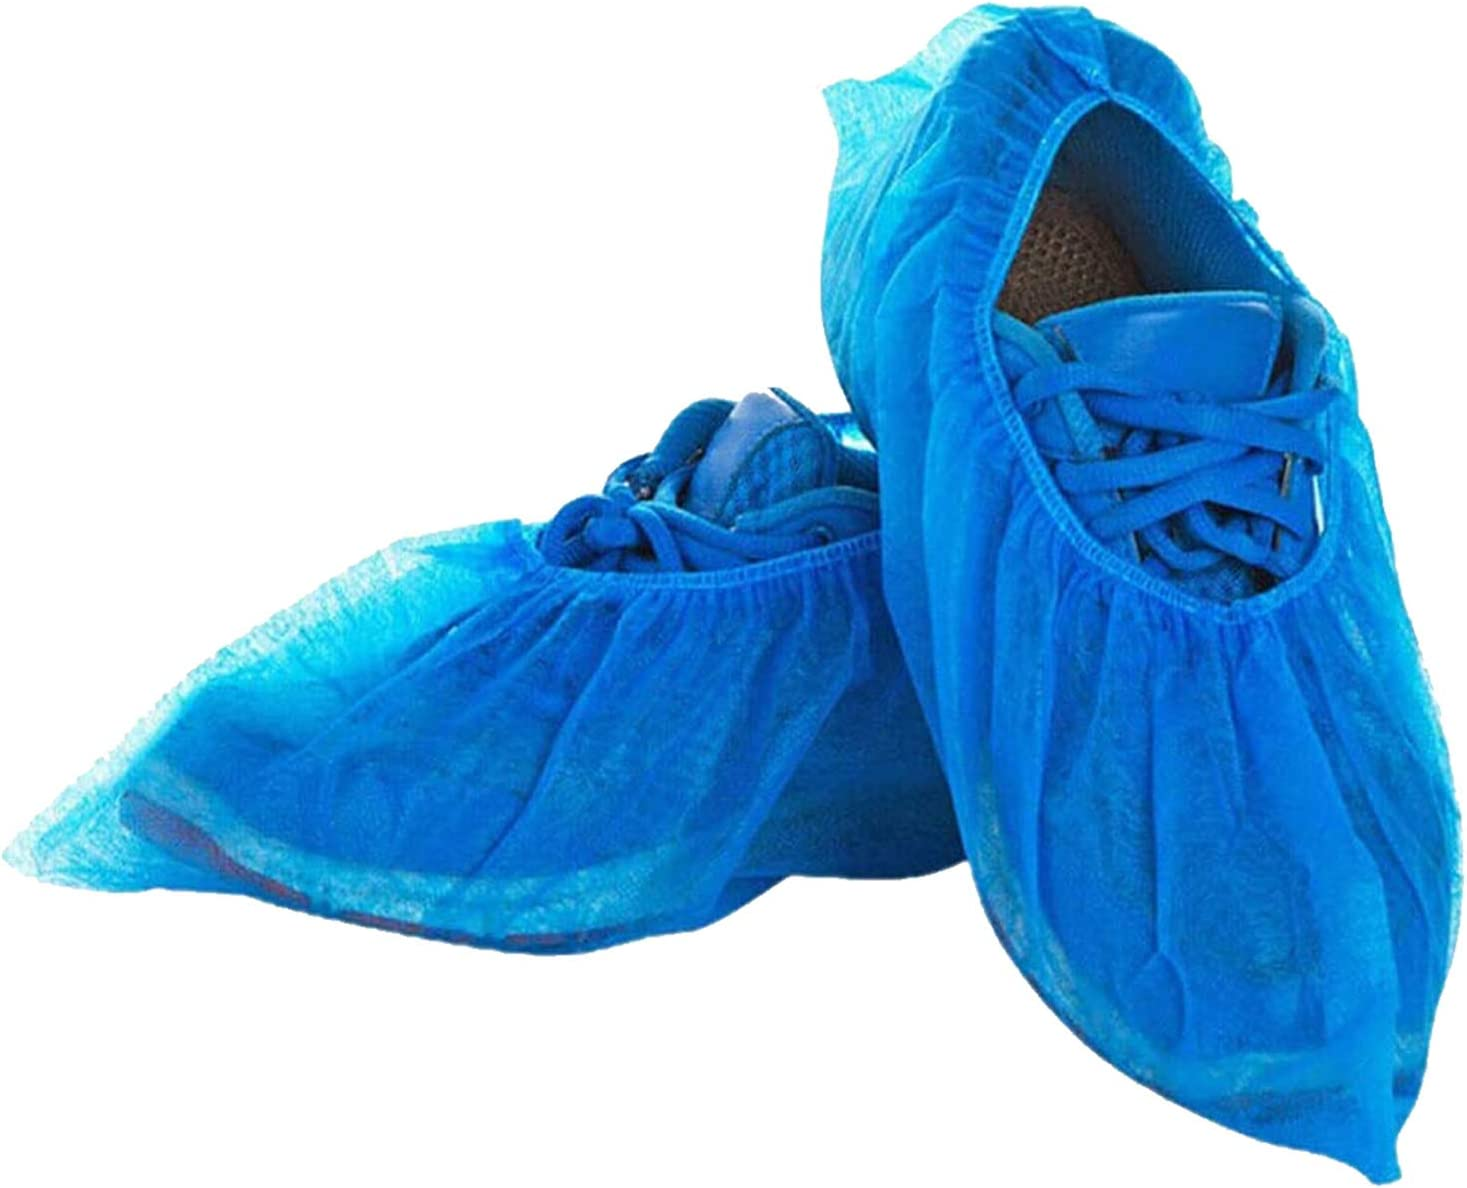 Oceantree Shoe Covers Disposable -100 Pack (50 Pairs) Disposable Shoe & Boot Covers Waterproof Slip Resistant Non Slip, Durable Boot&Shoes Cover, One Size Fits All (Clear Blue) (CPE Plastic)